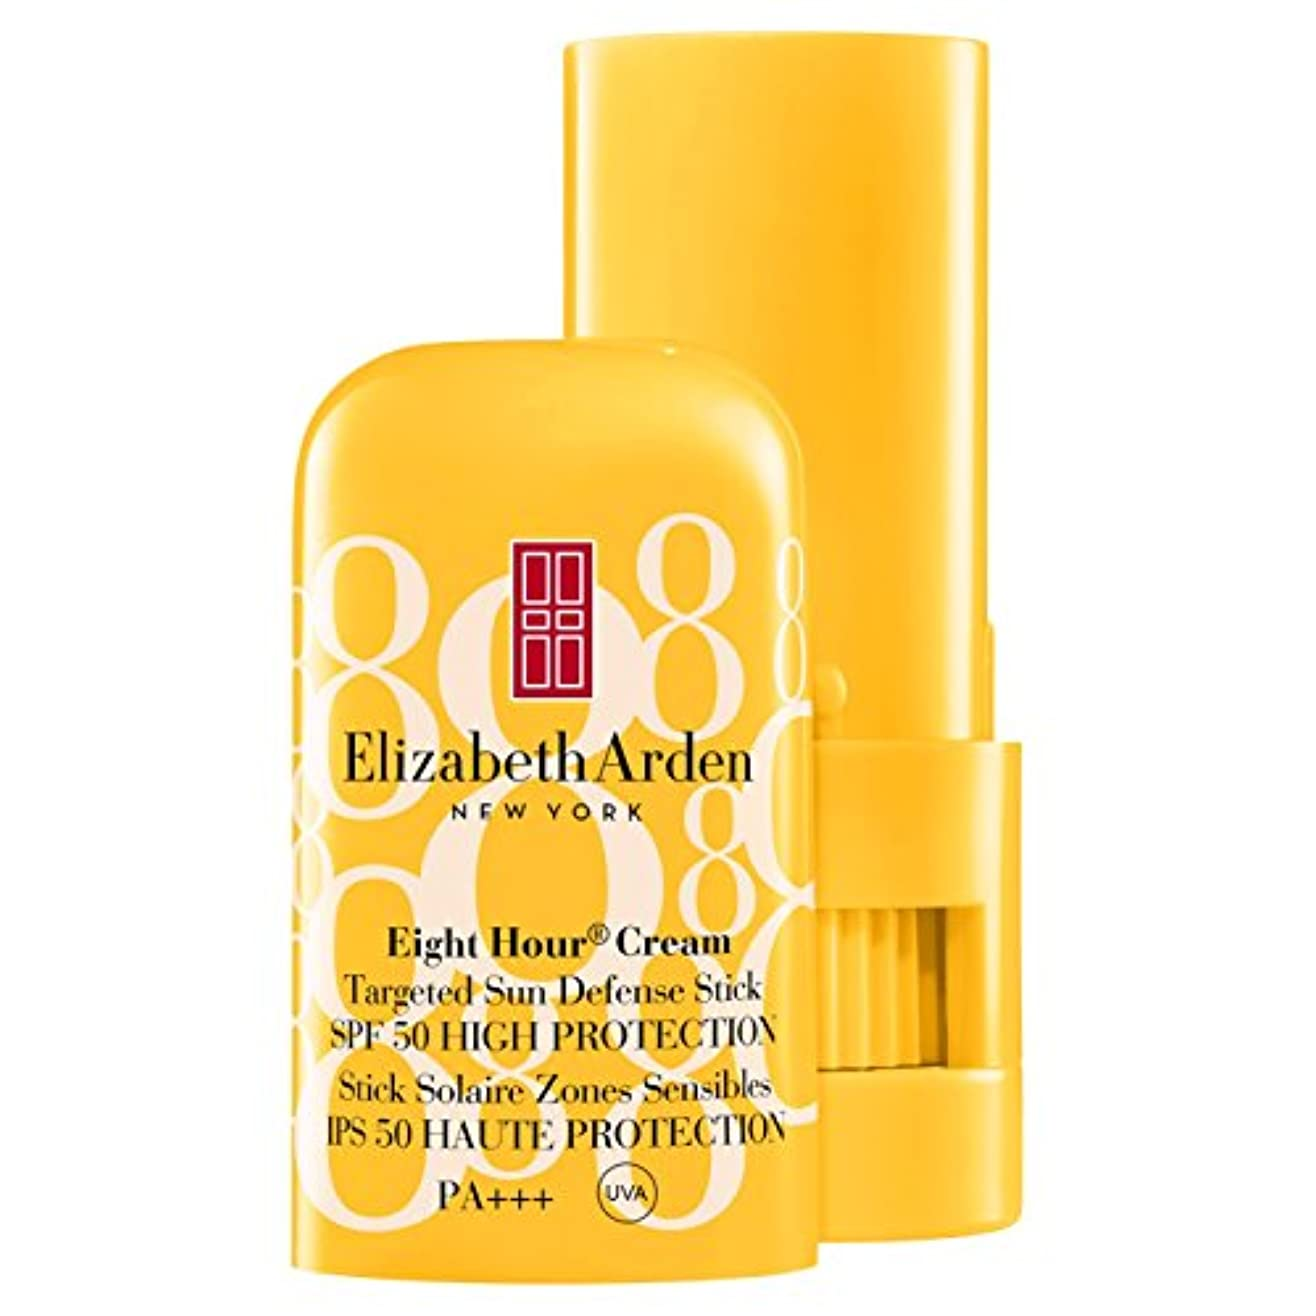 いつステープル出発するElizabeth Arden Eight Hour? Cream Targeted Sun Defense Stick SPF50 High Protection 15ml - エリザベスアーデン8?クリームは、太陽の...